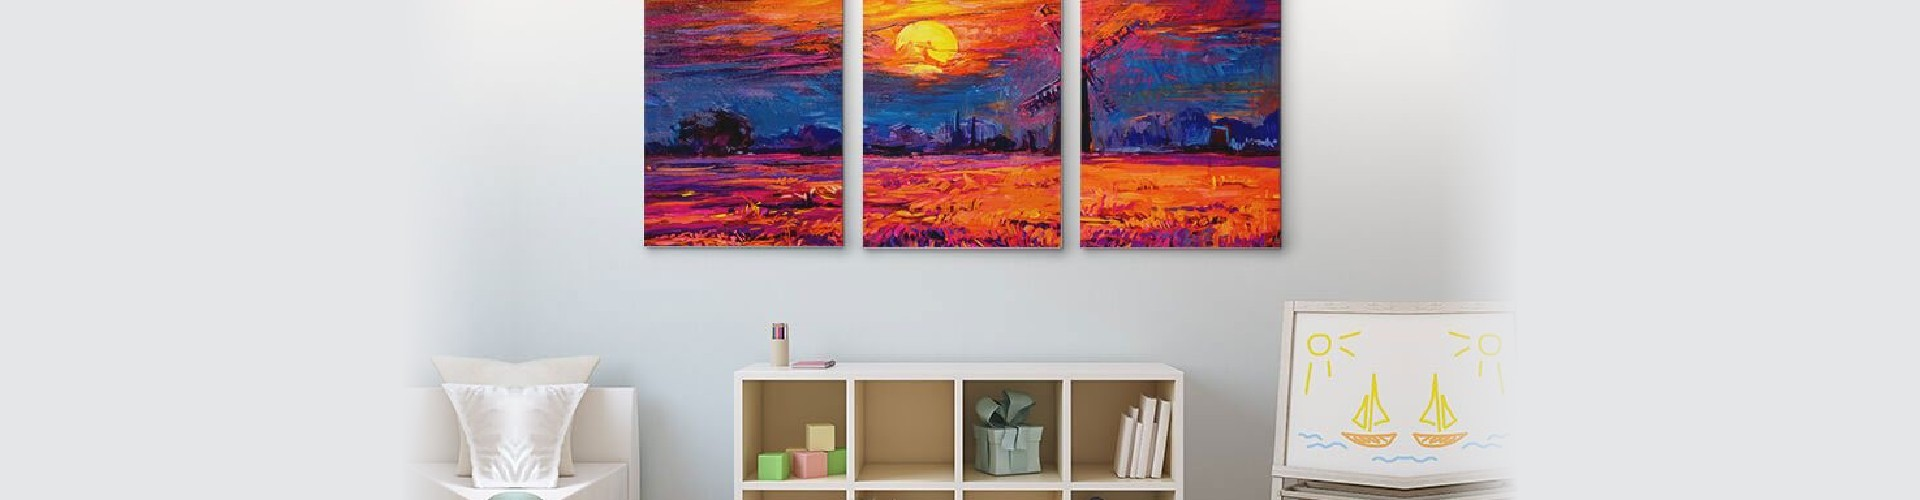 painting on the wall